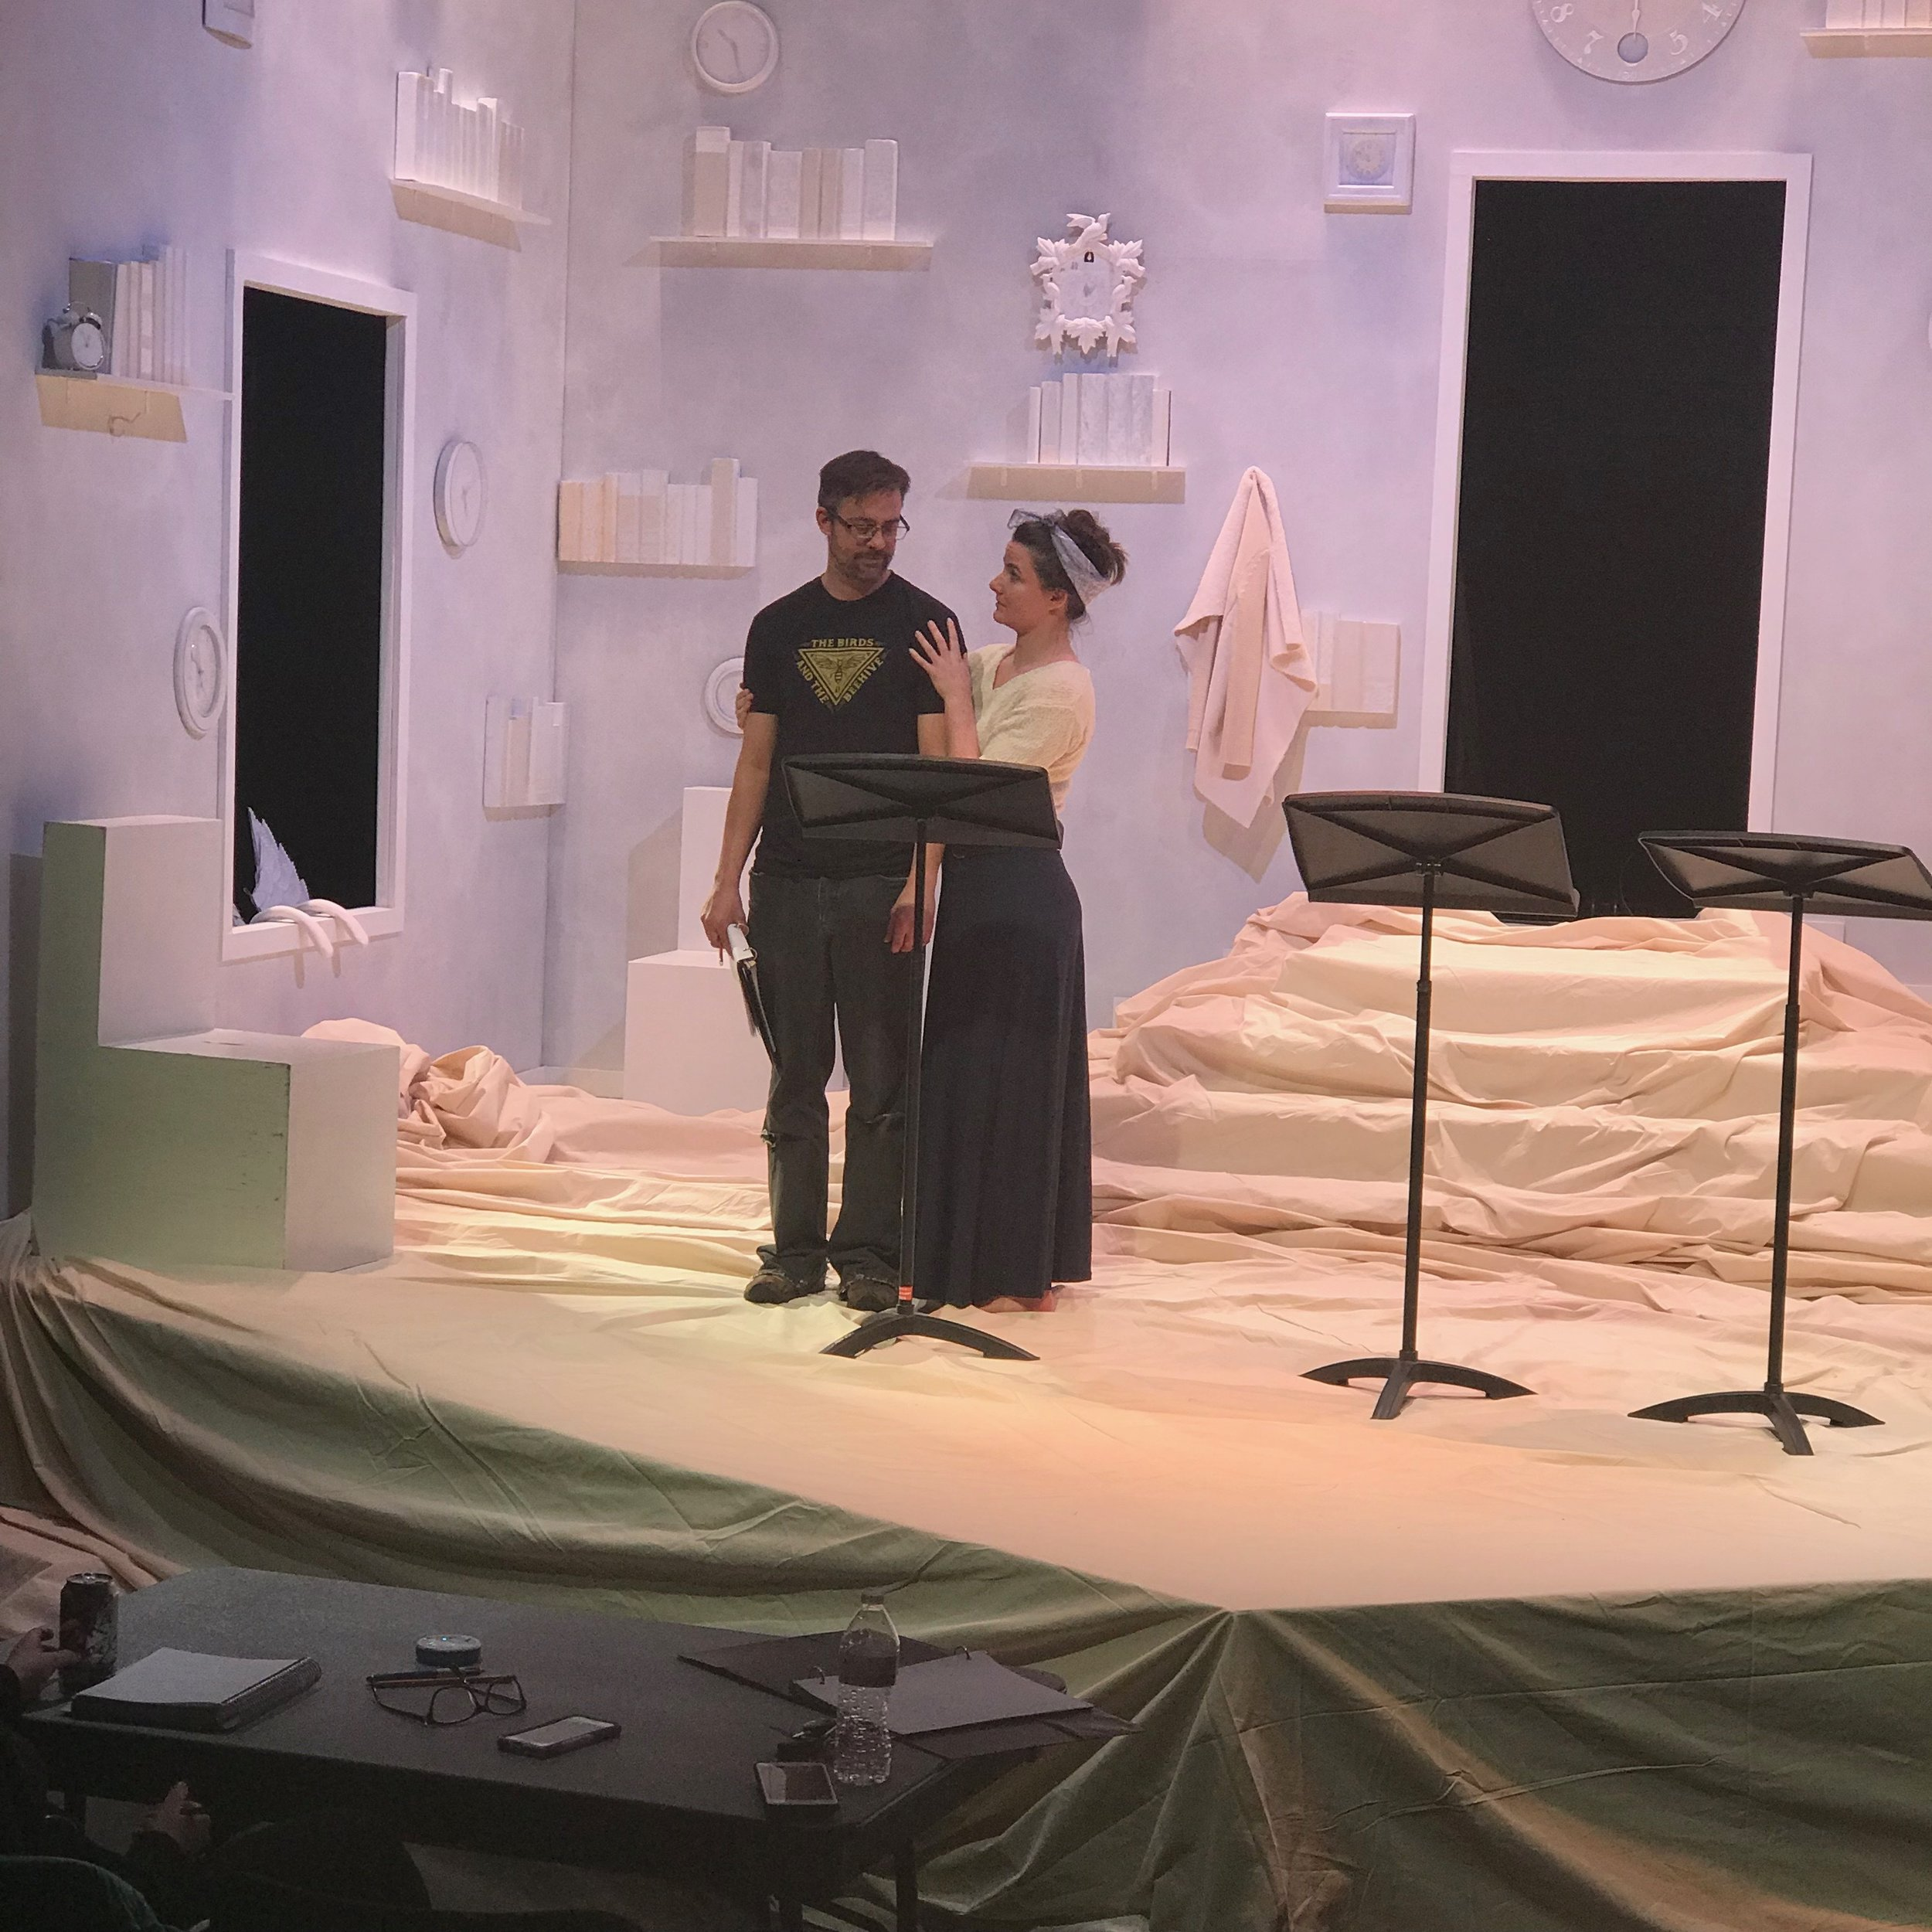 Matthew Sincell as James and Emilie Starr as Tamson in a rehearsal for the staged reading of MOUNTAIN LAW at Plan-B Theatre.